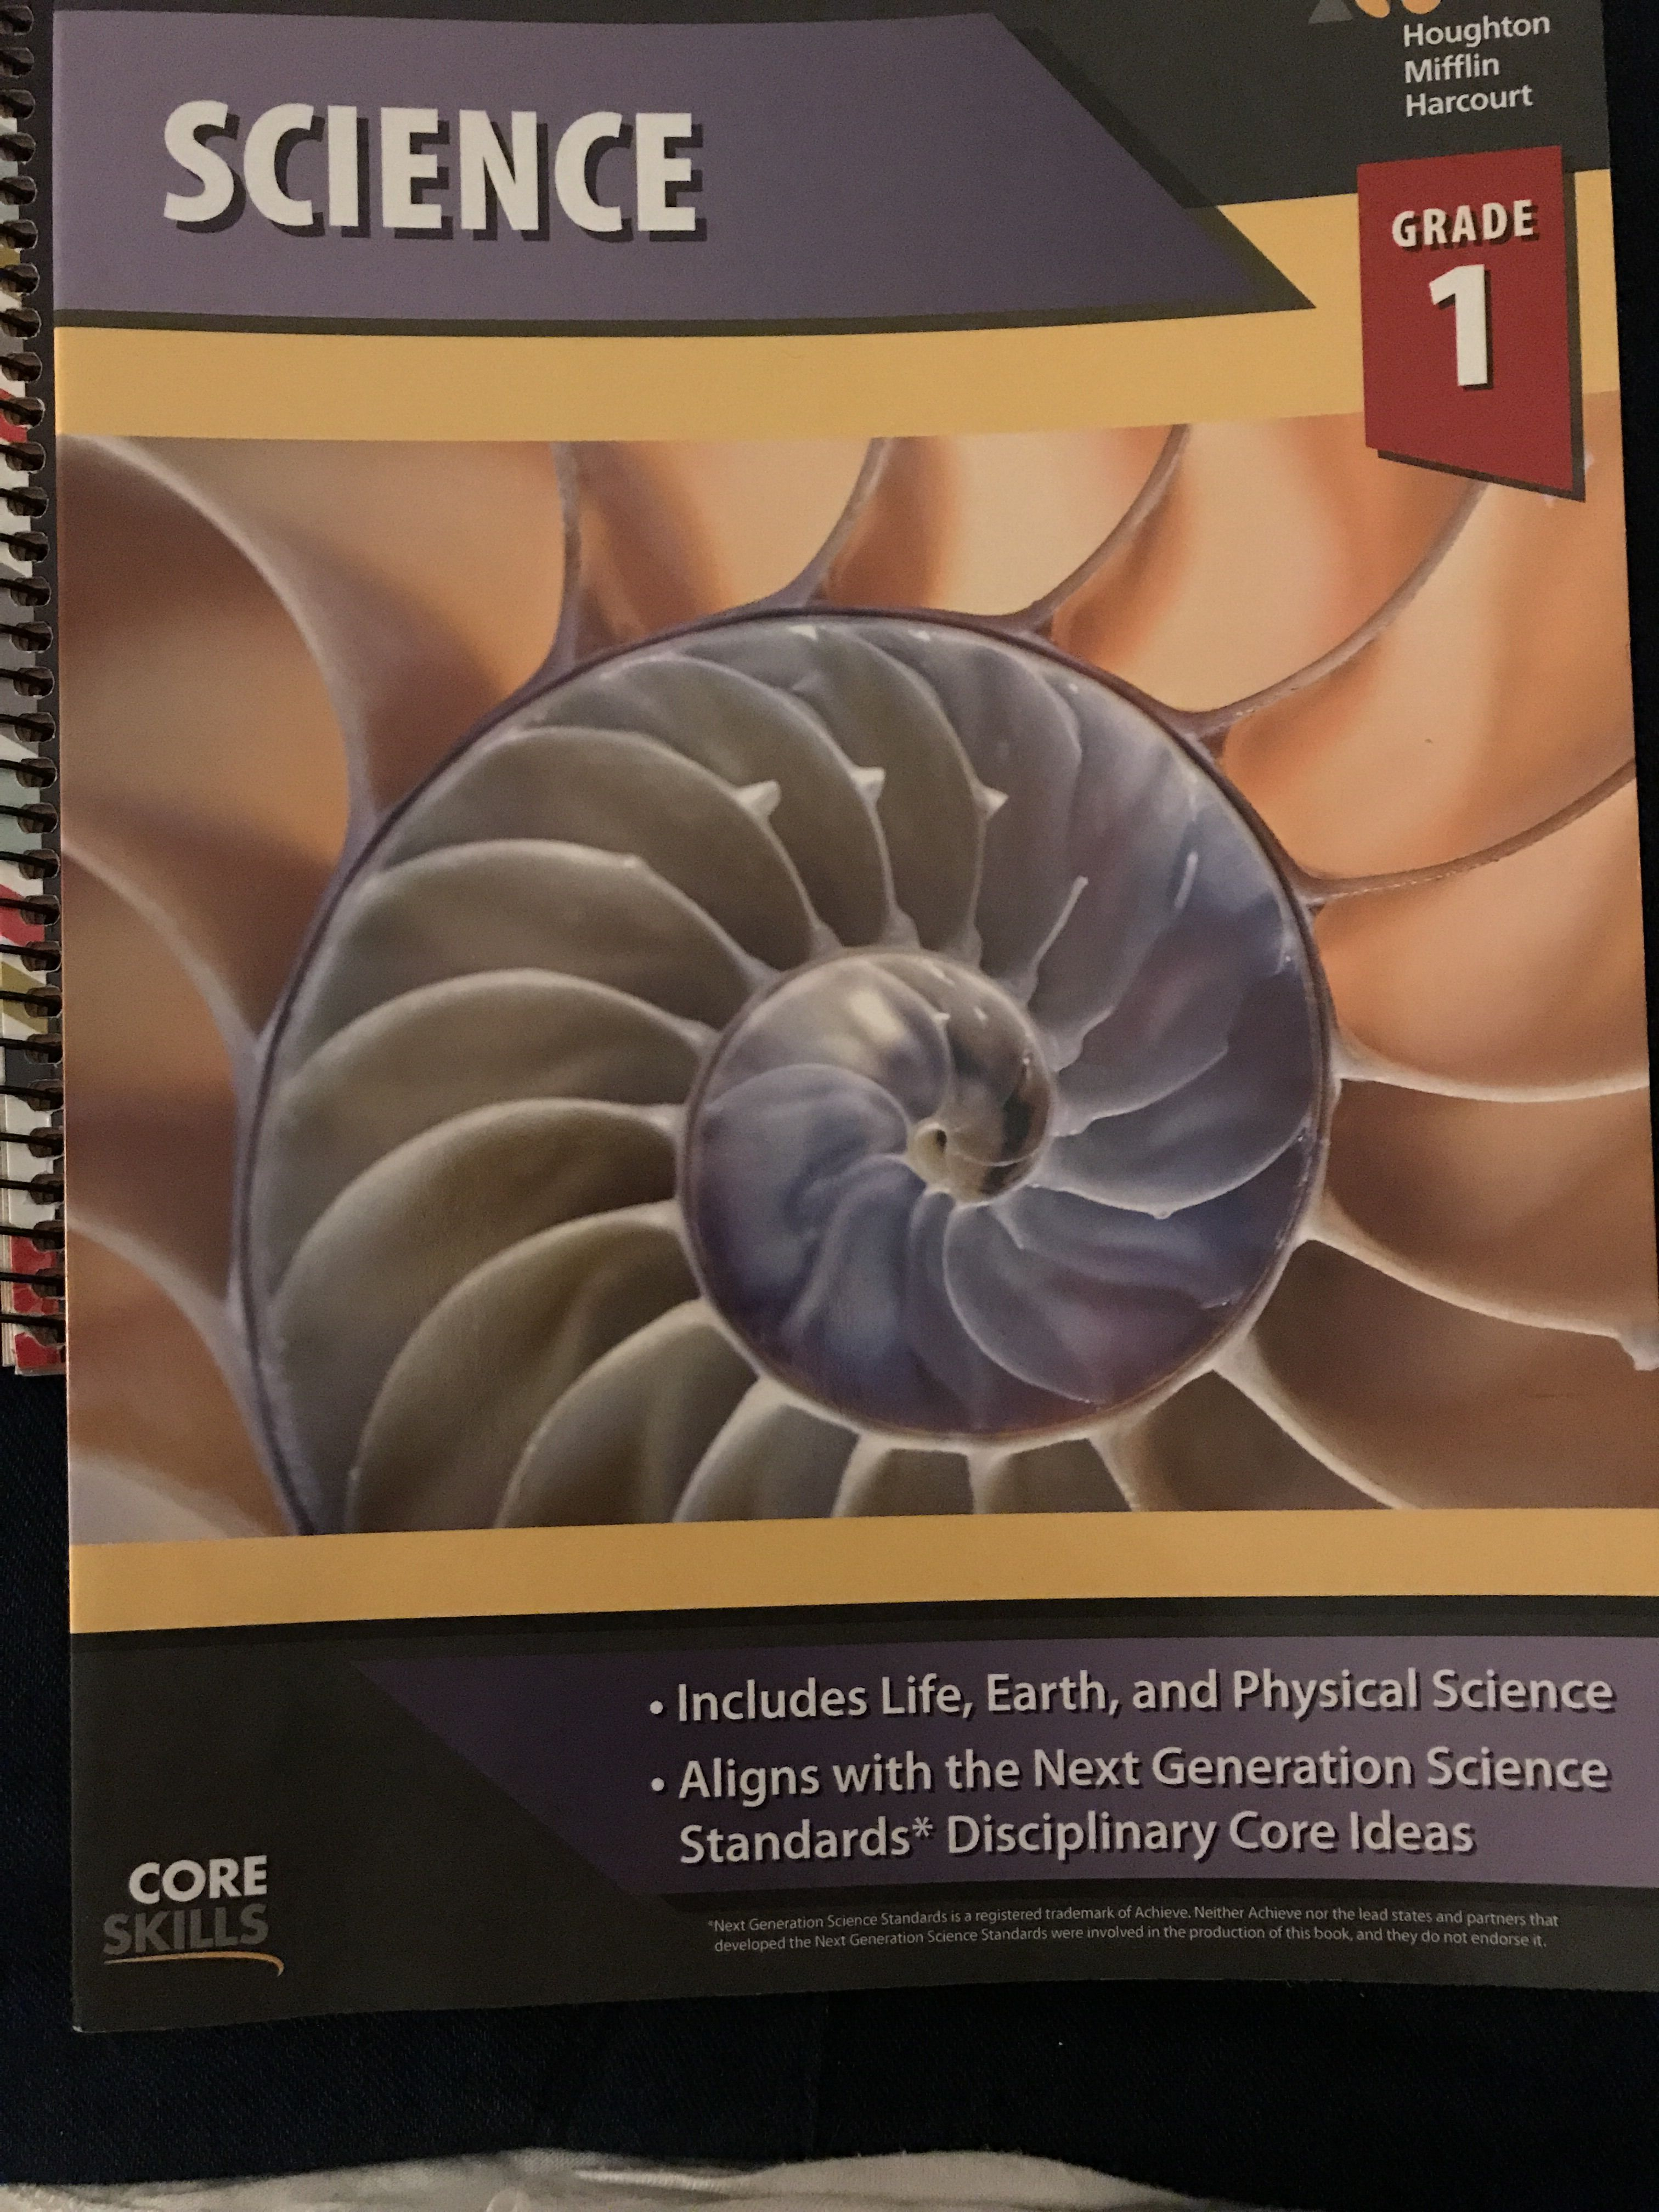 The Science Workbook We Will Be Using